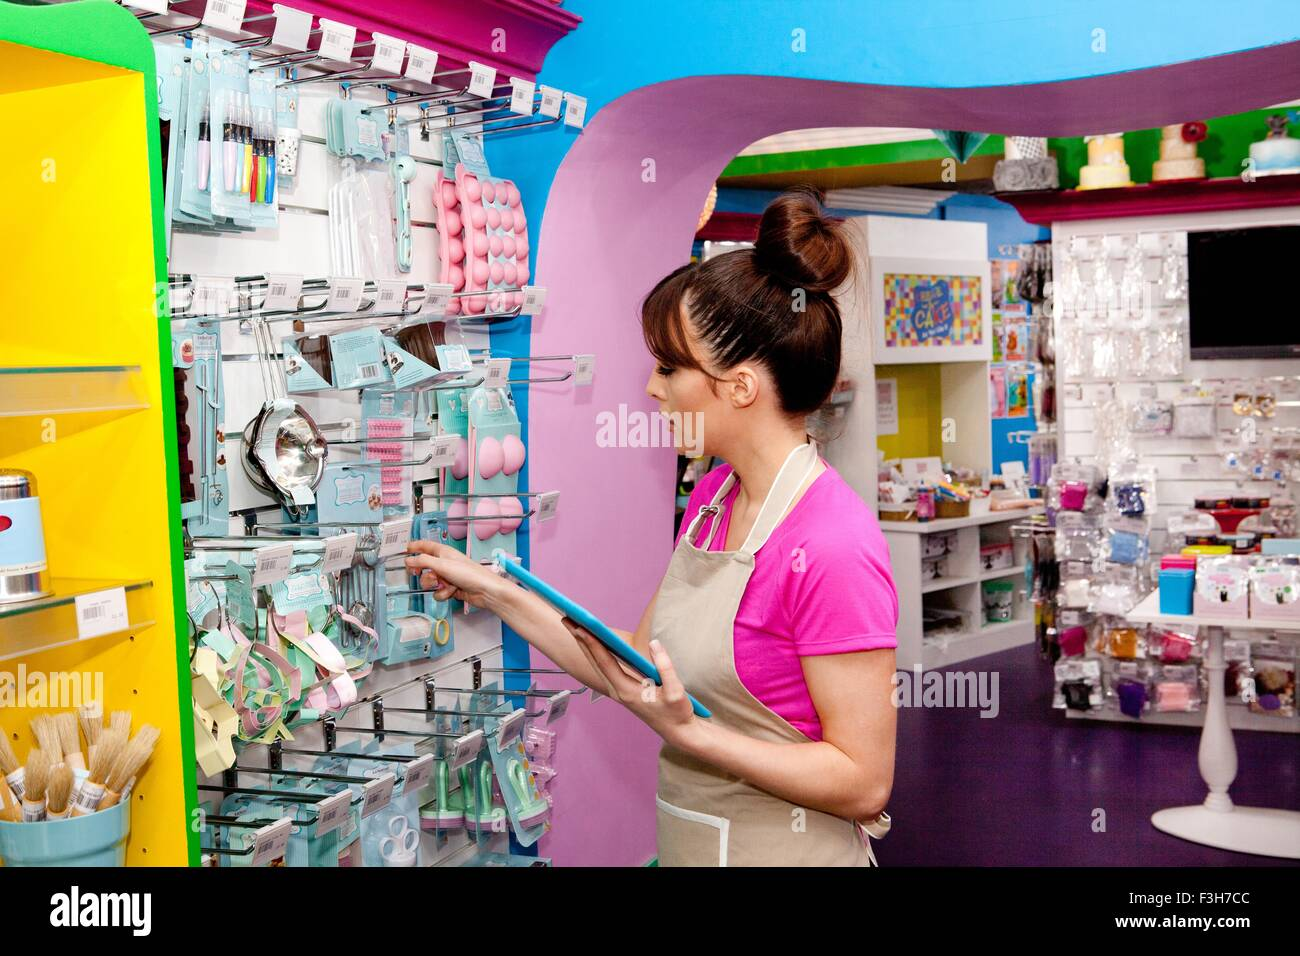 Portrait of young woman, working in cake shop, counting stock - Stock Image